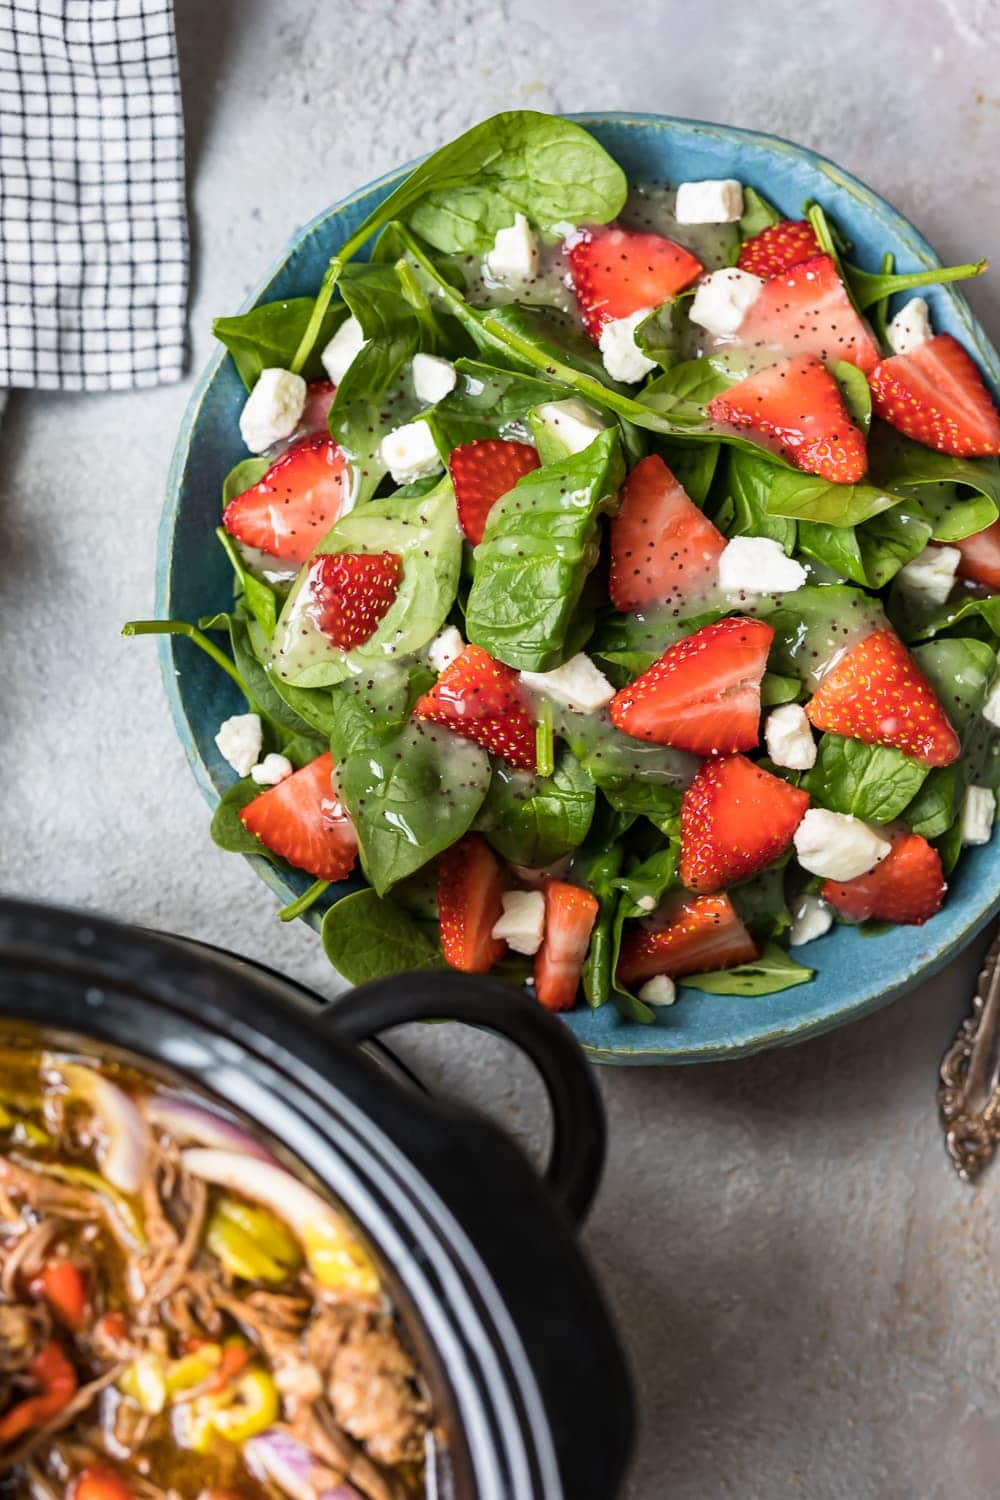 a plate of salad with strawberries and feta cheese